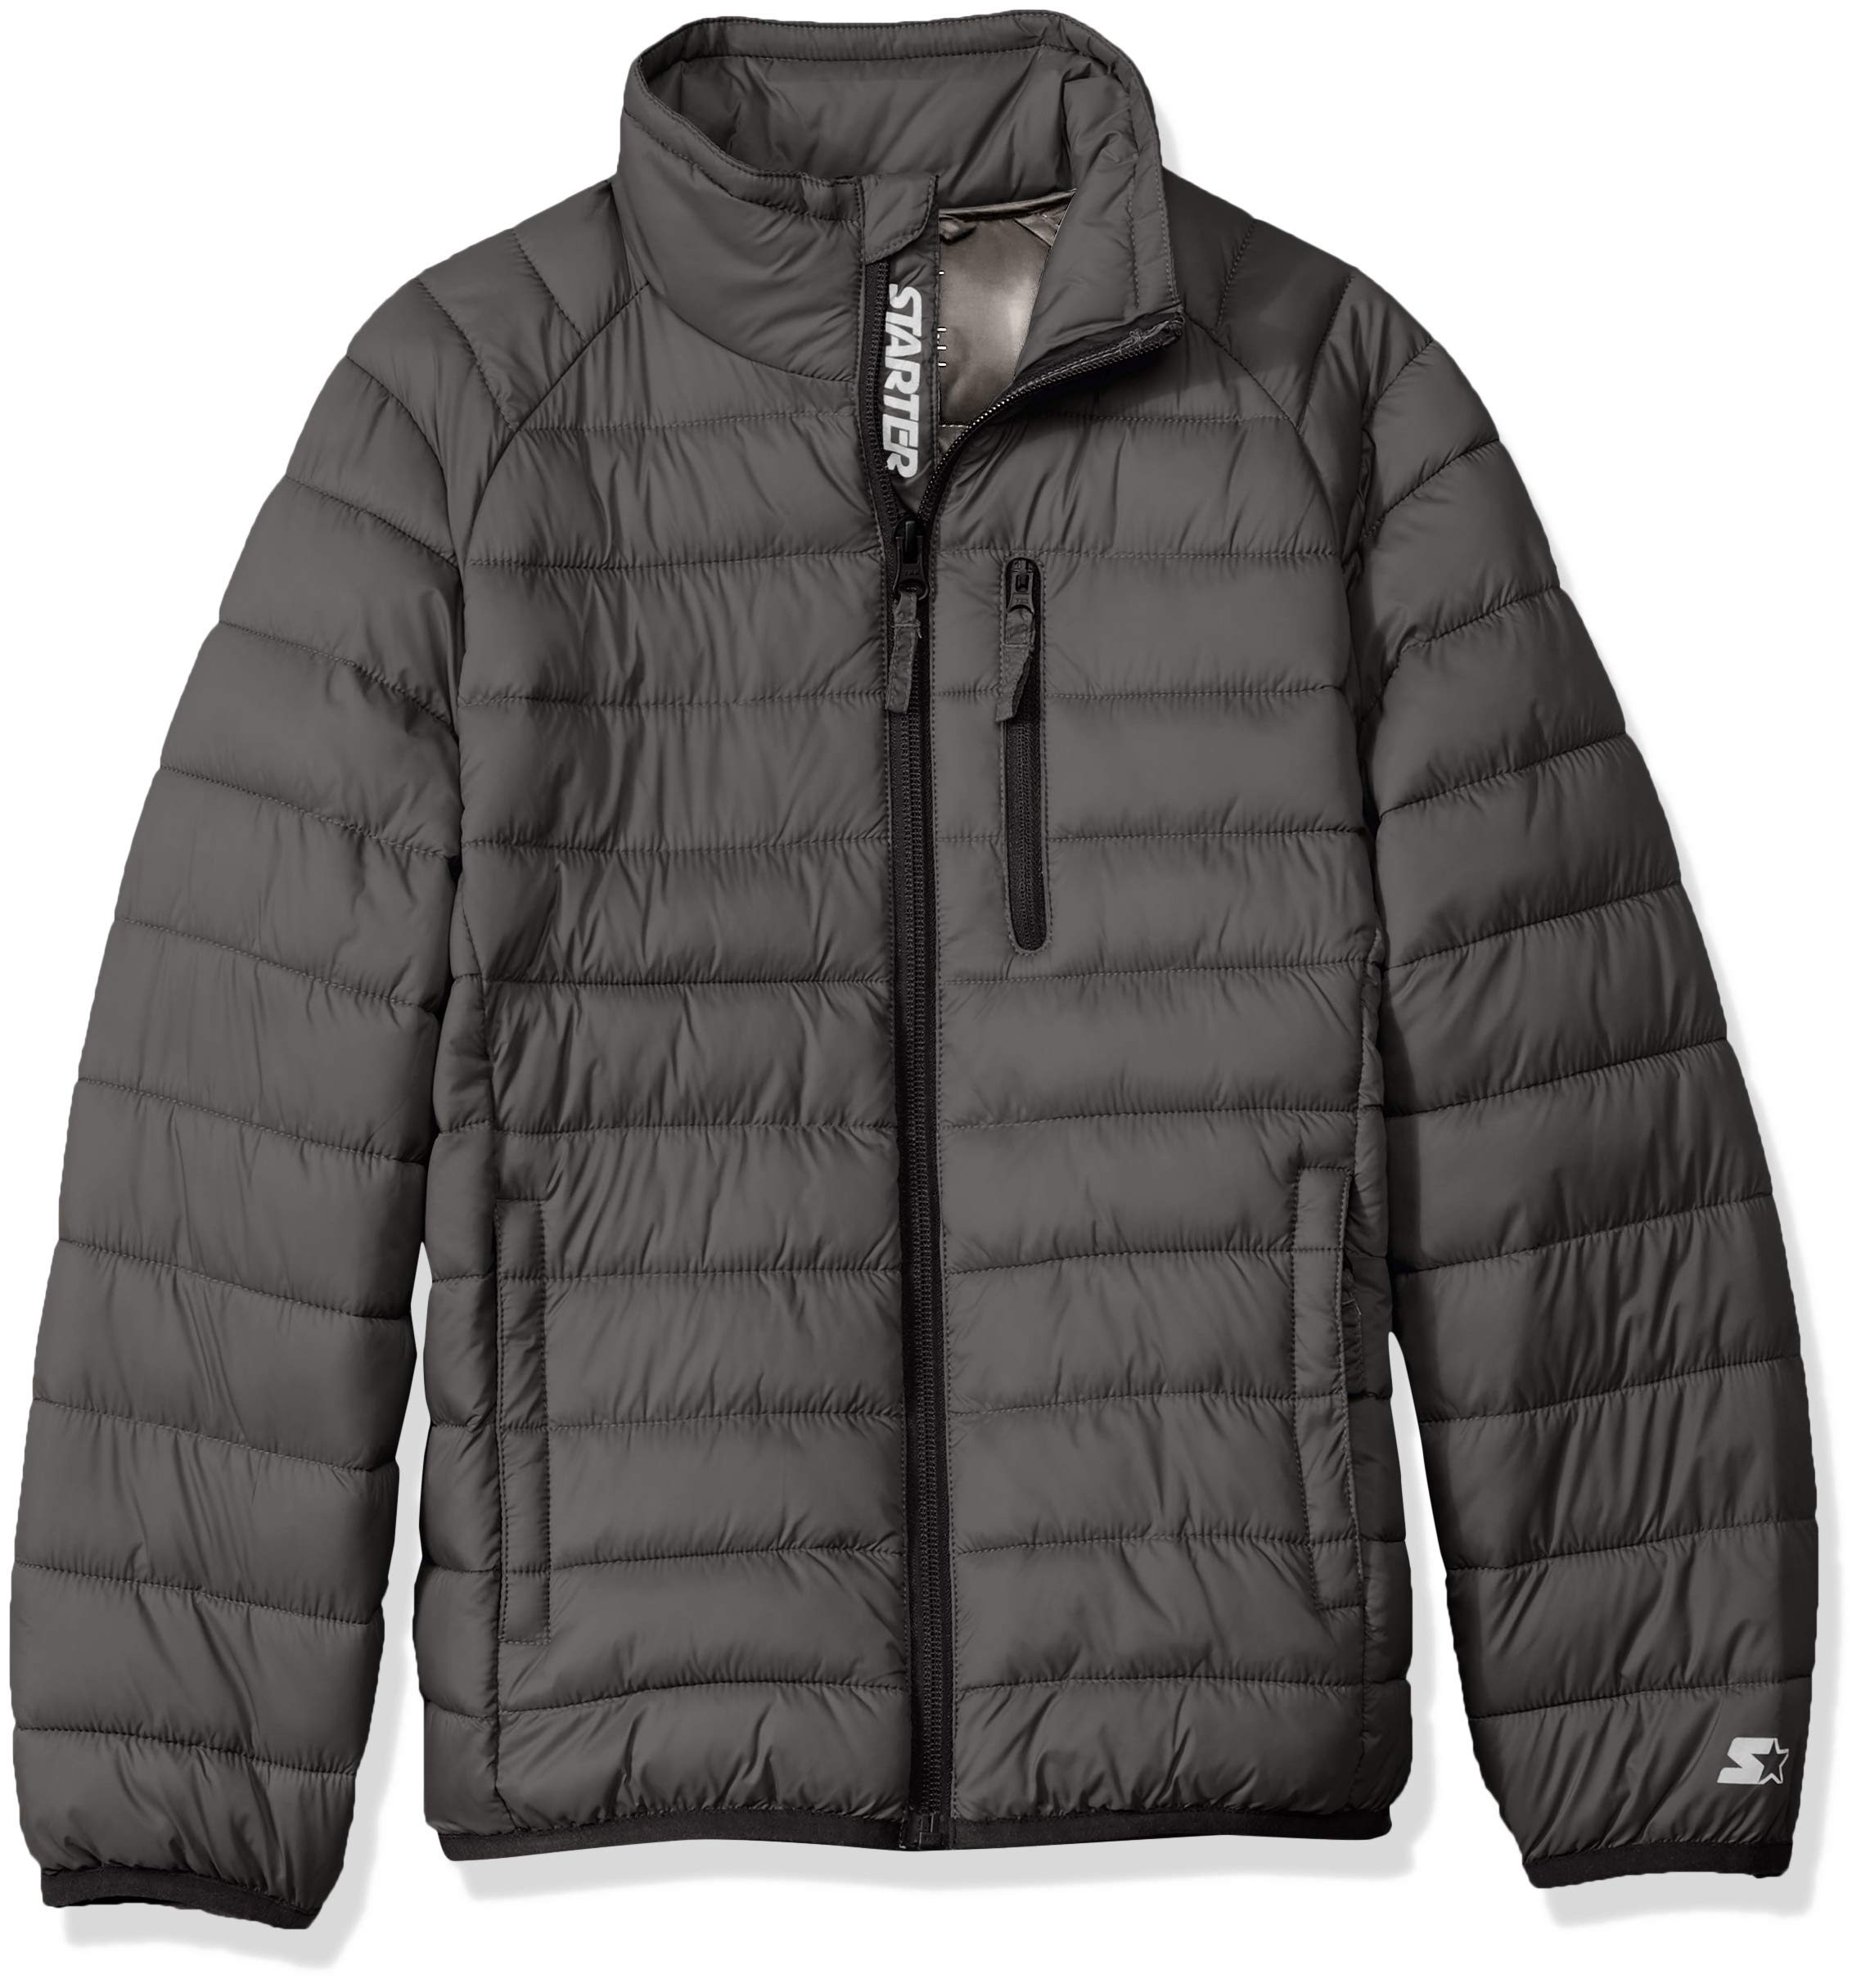 Starter Boys' Packable Puffer Jacket, Amazon Exclusive, Iron Grey, XS